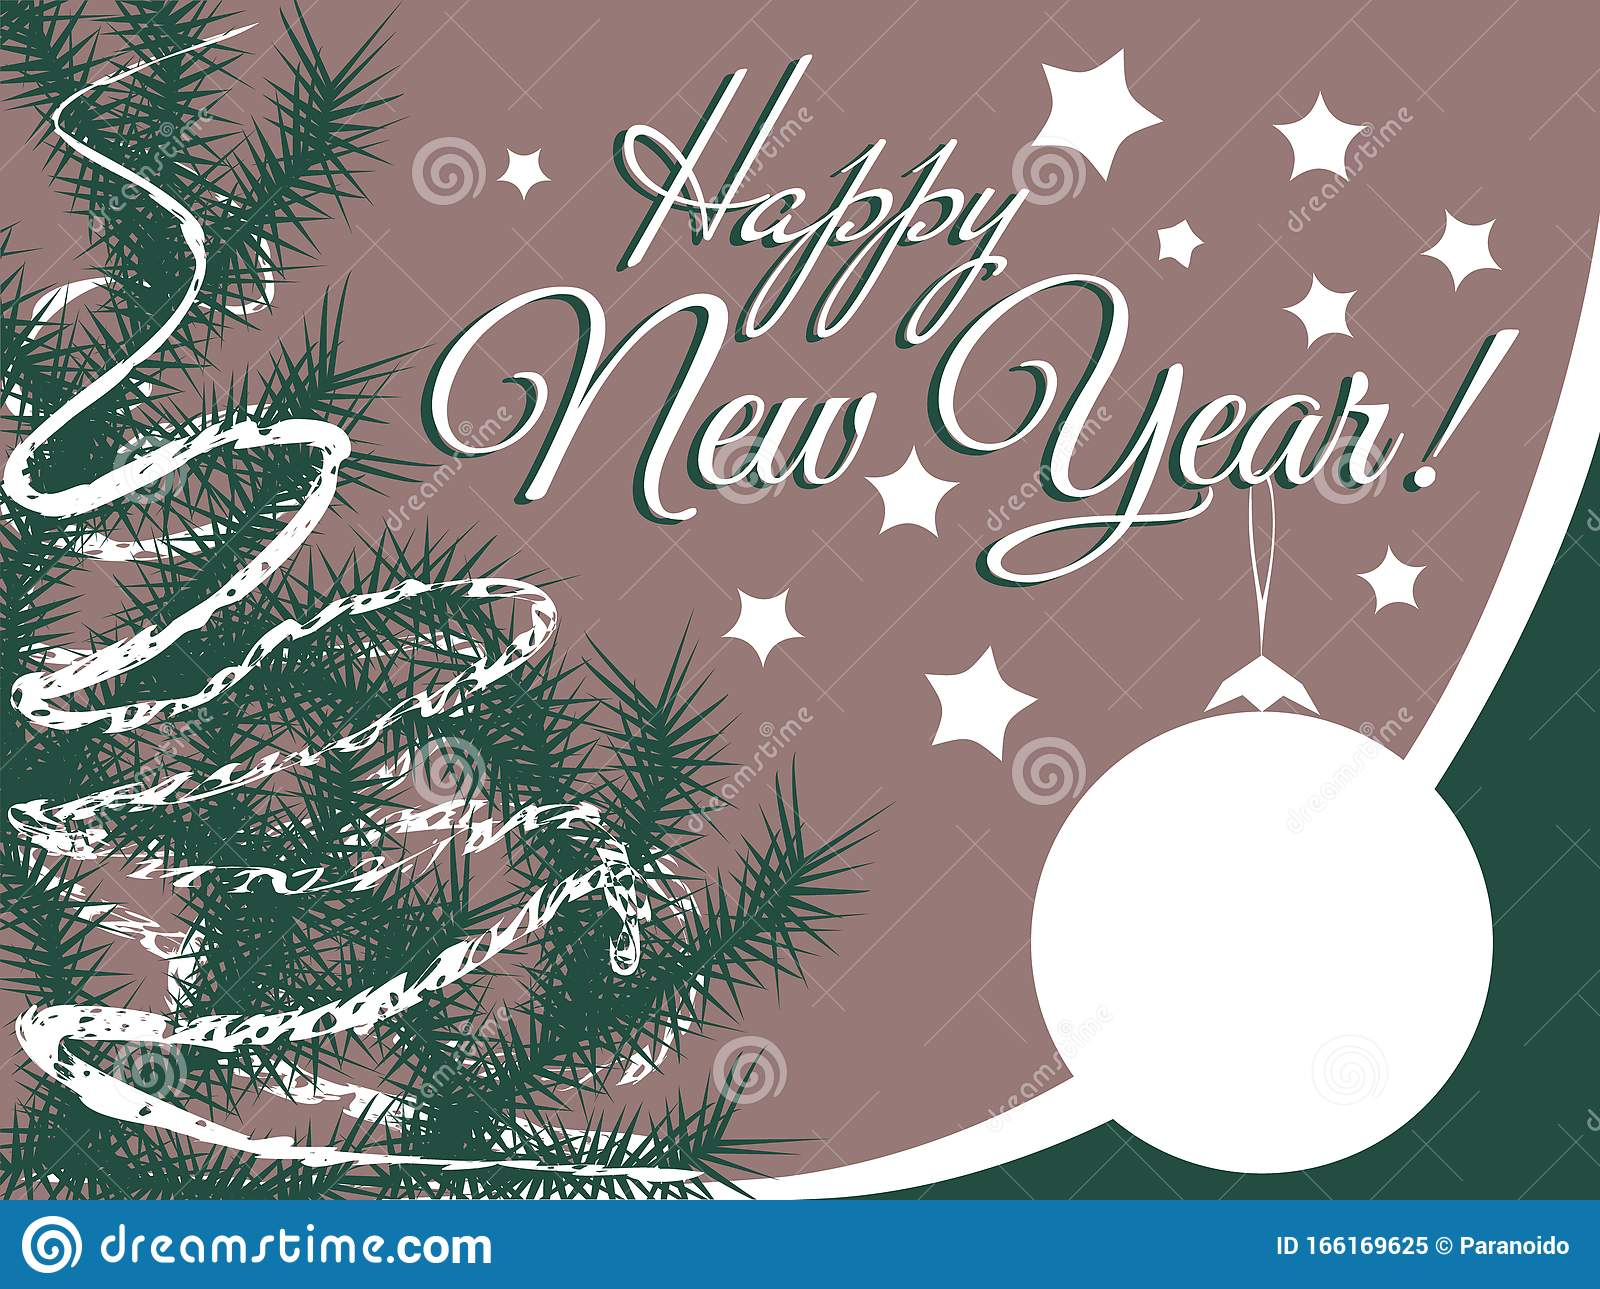 Old Fashioned Vintage Greeting Card In Faded Colors Christmas Tree And Ball Text Happy New Year Stock Vector Illustration Of Pastel Decoration 166169625